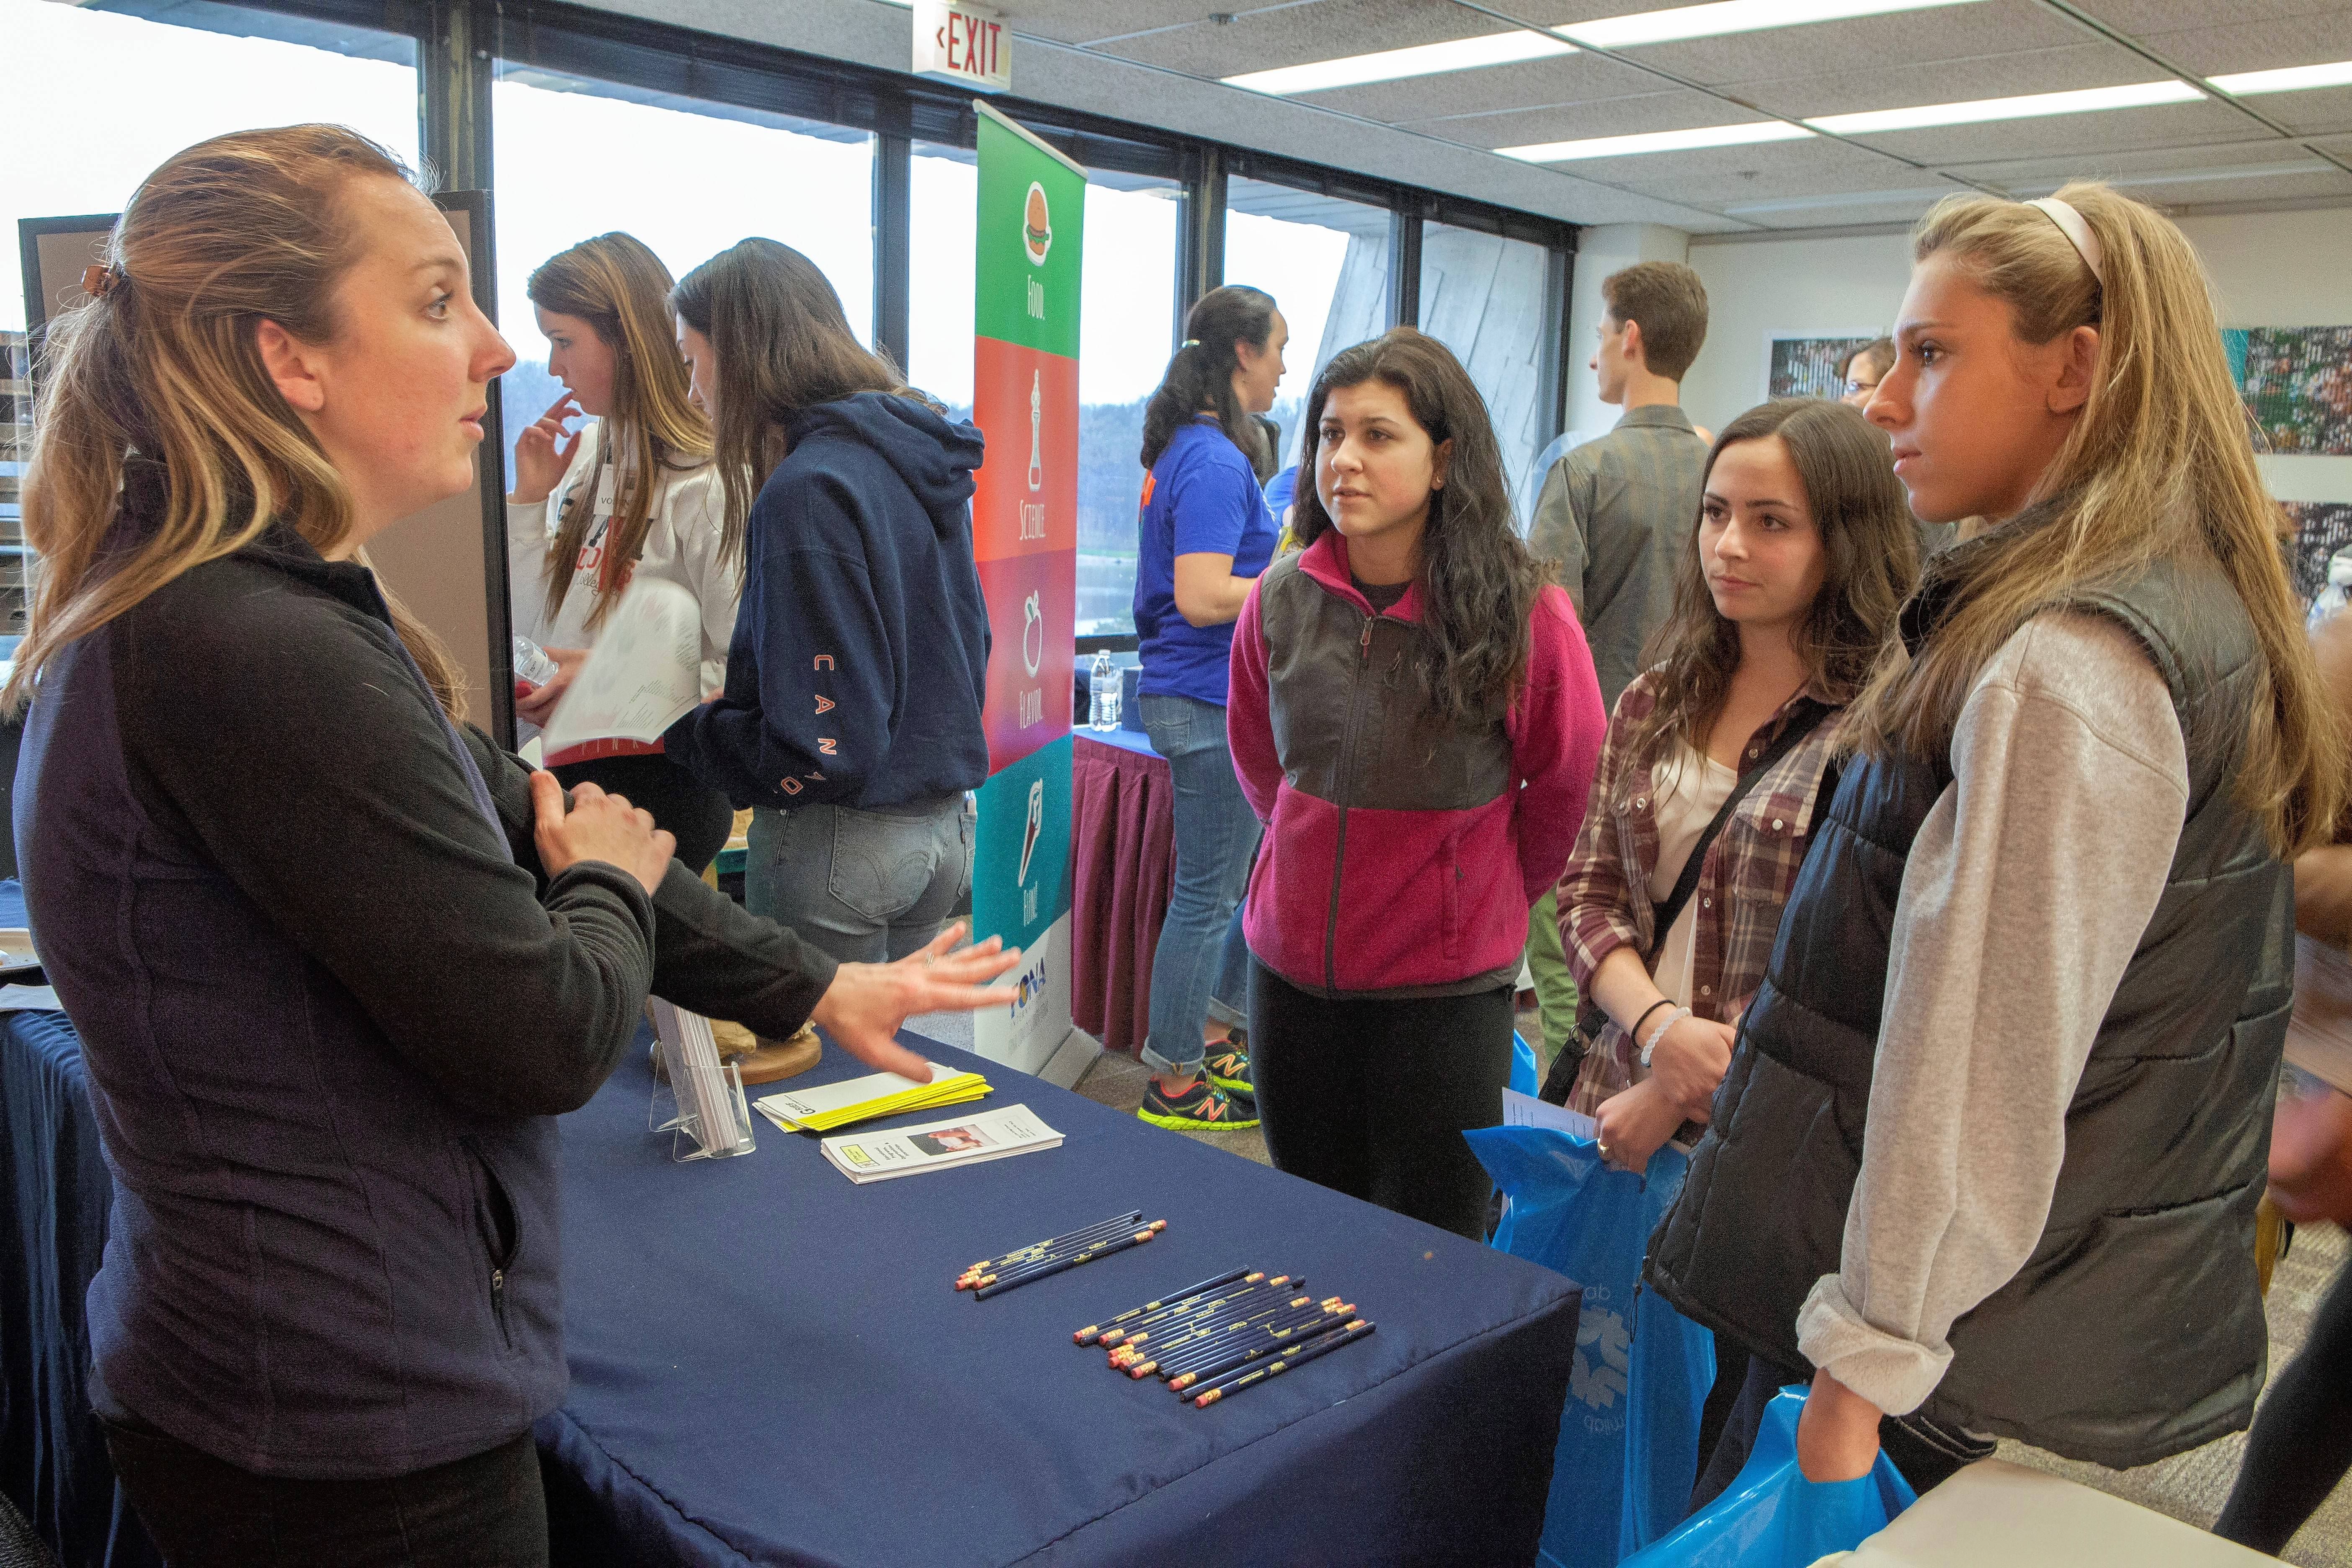 High school students can get real-world advice at Fermilab's annual STEM Career Expo on Wednesday, April 27.